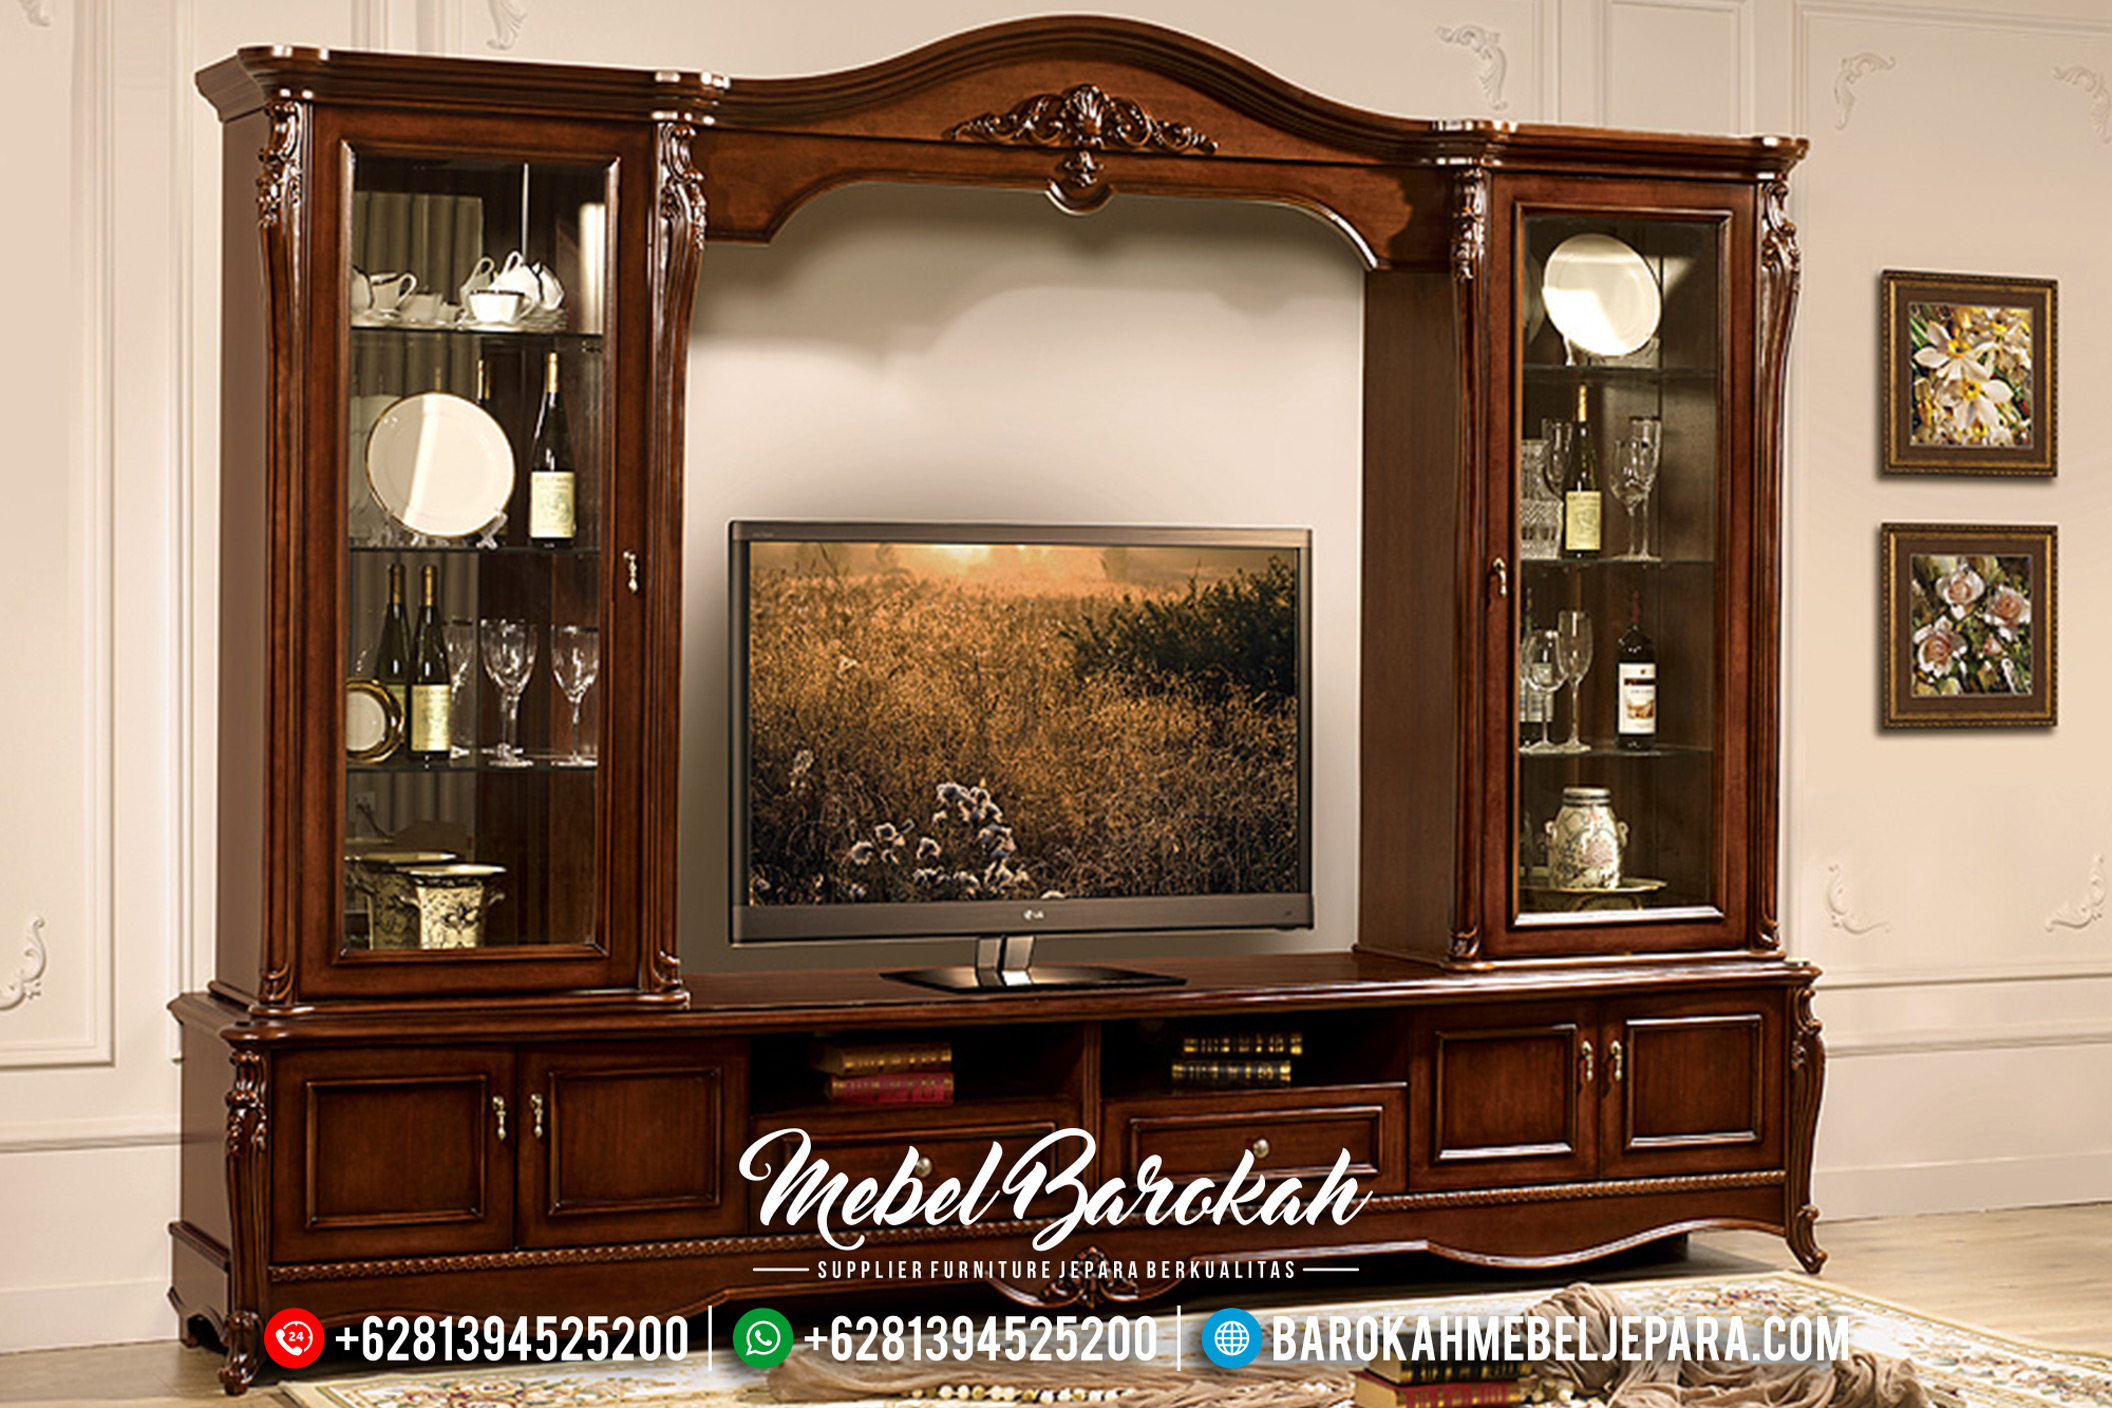 Jual Bufet TV Jepara Minimalis Mewah Victorian Natural Finish MB-0169